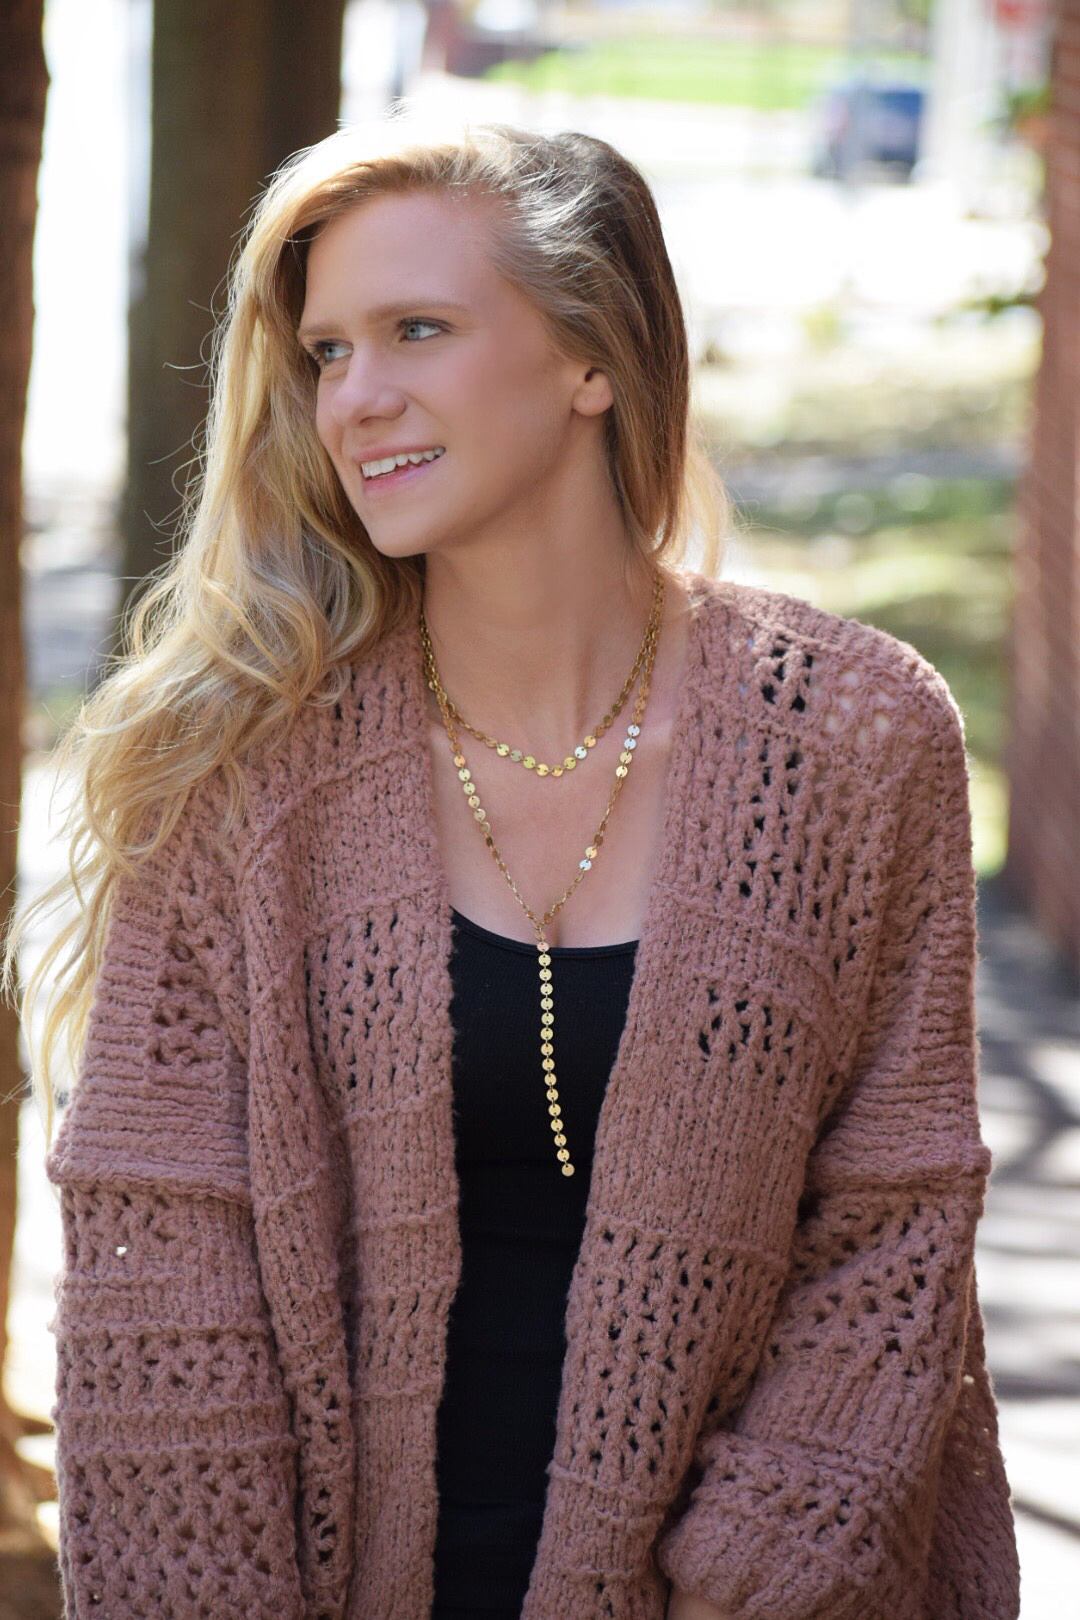 gold chain necklace and free people cardigan